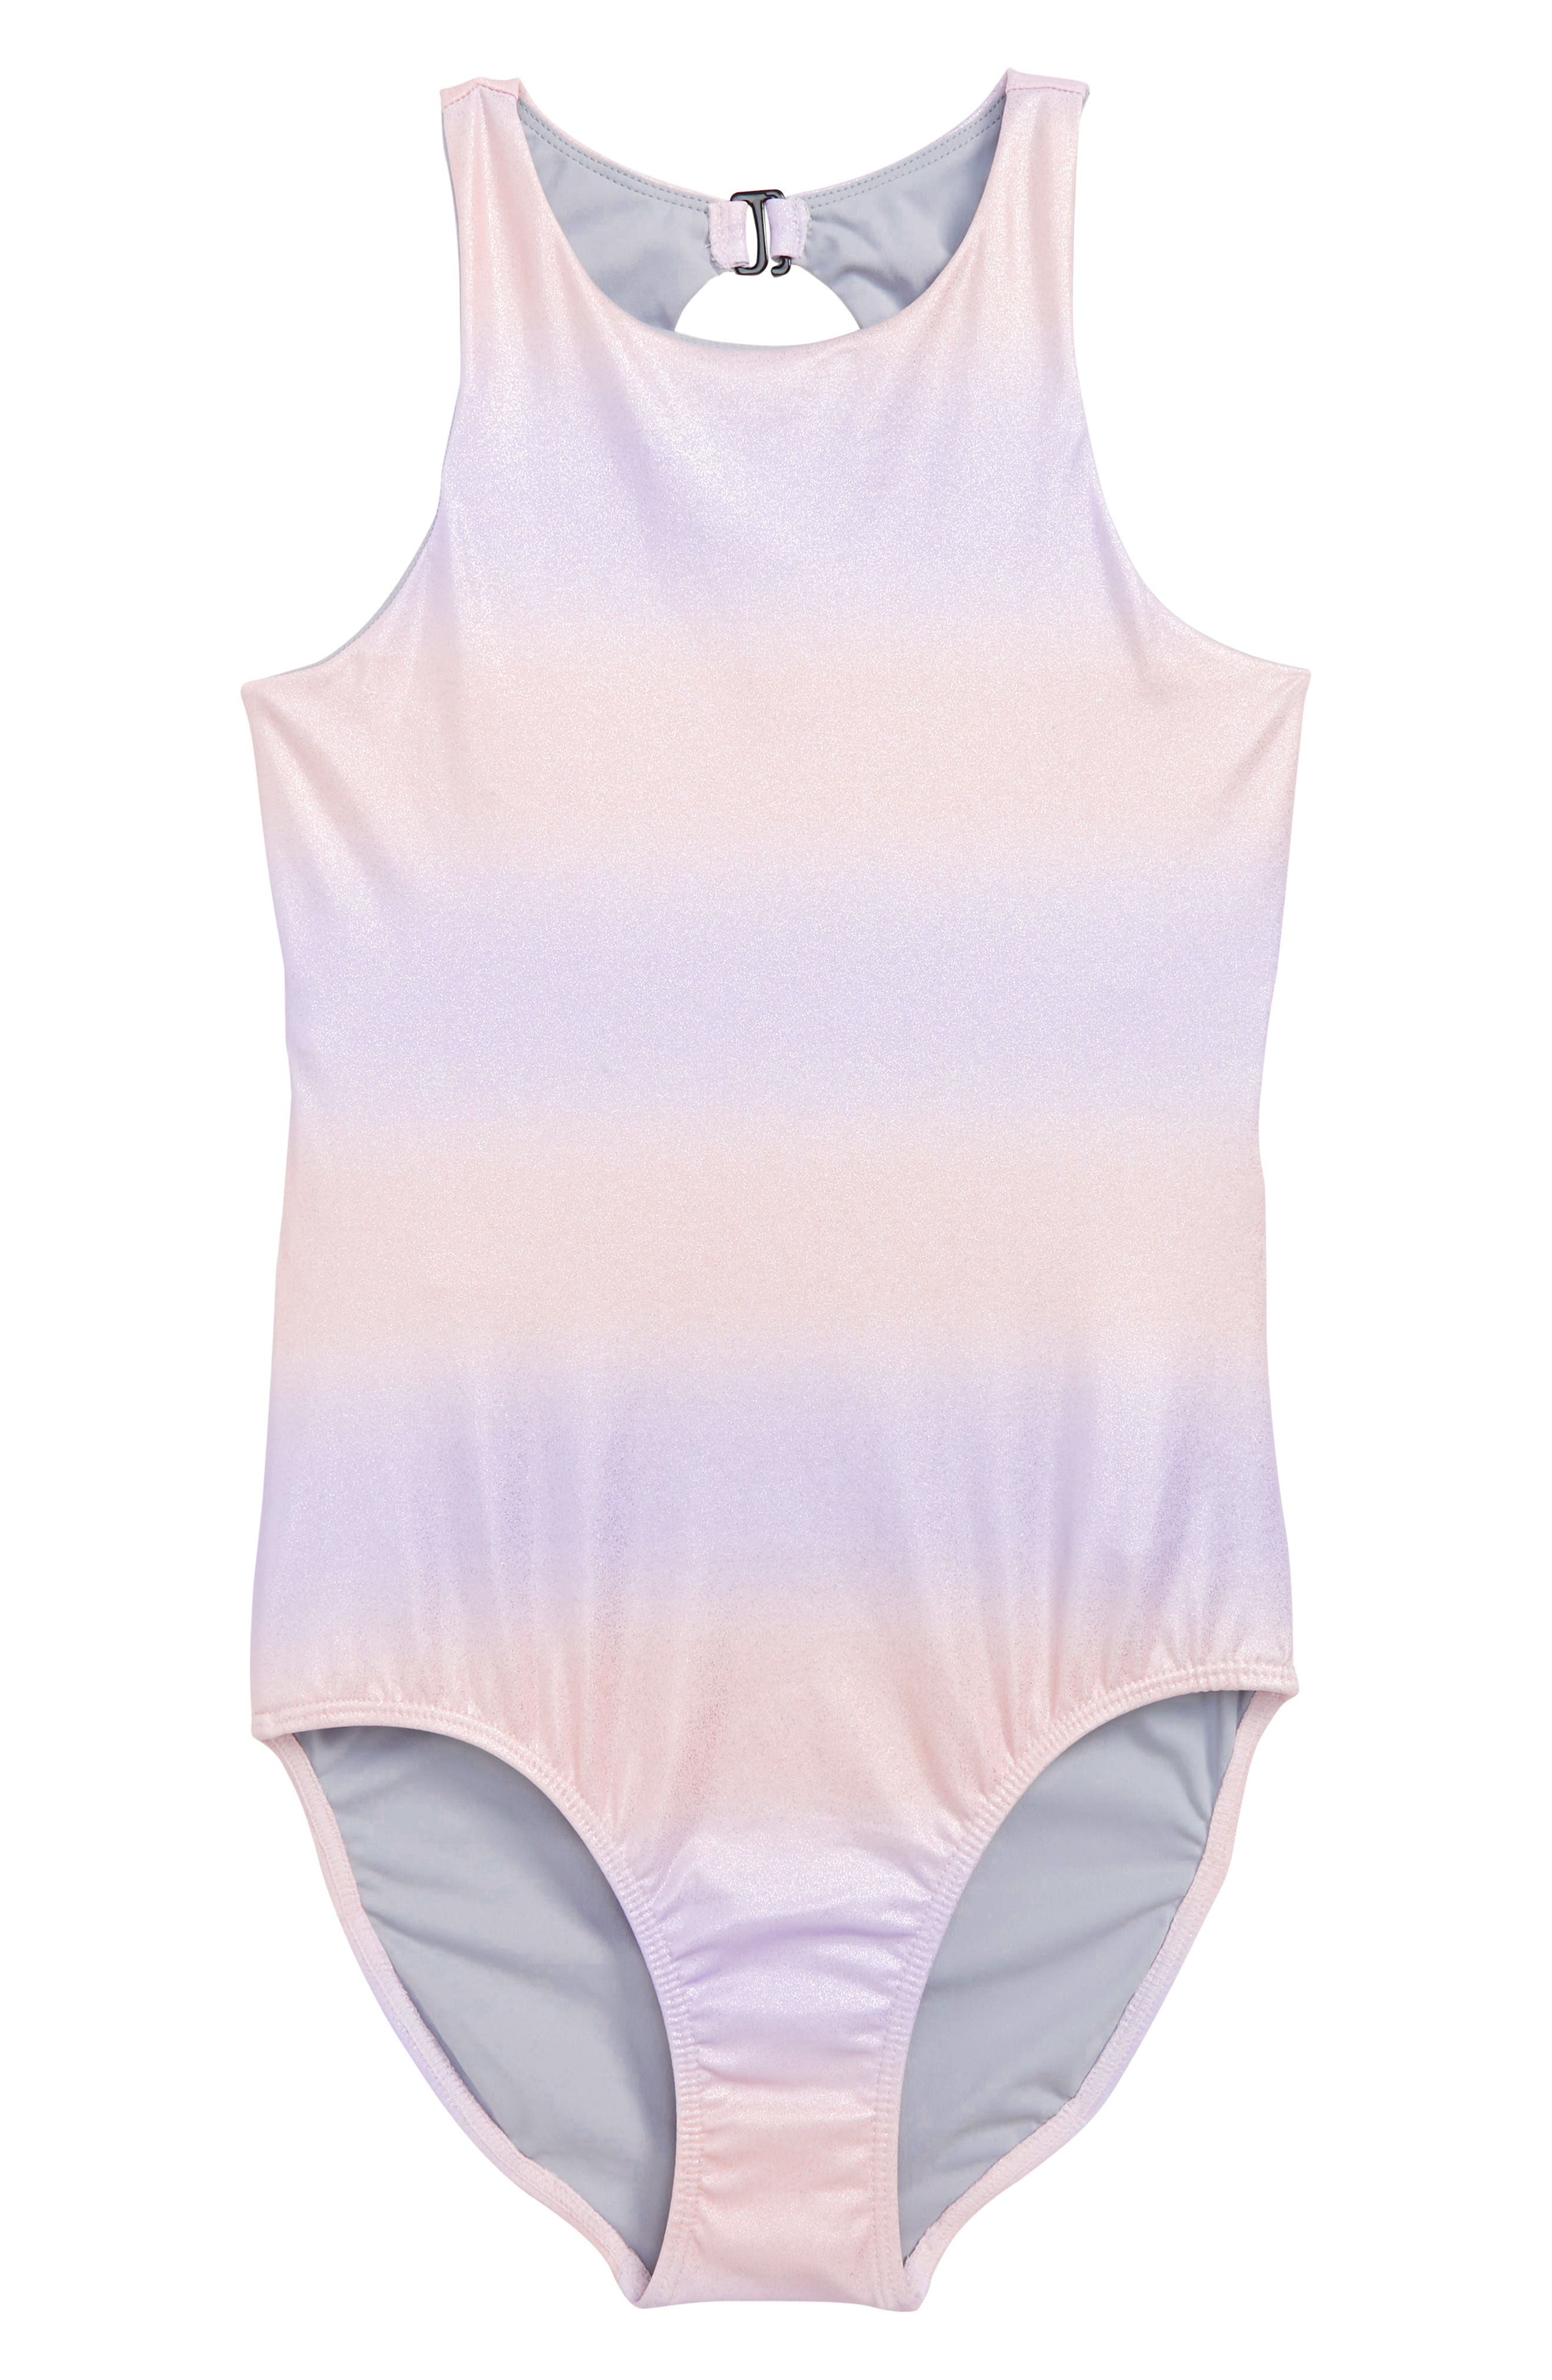 Ladder Back One-Piece Swimsuit,                         Main,                         color, Pink Sunset Metallic